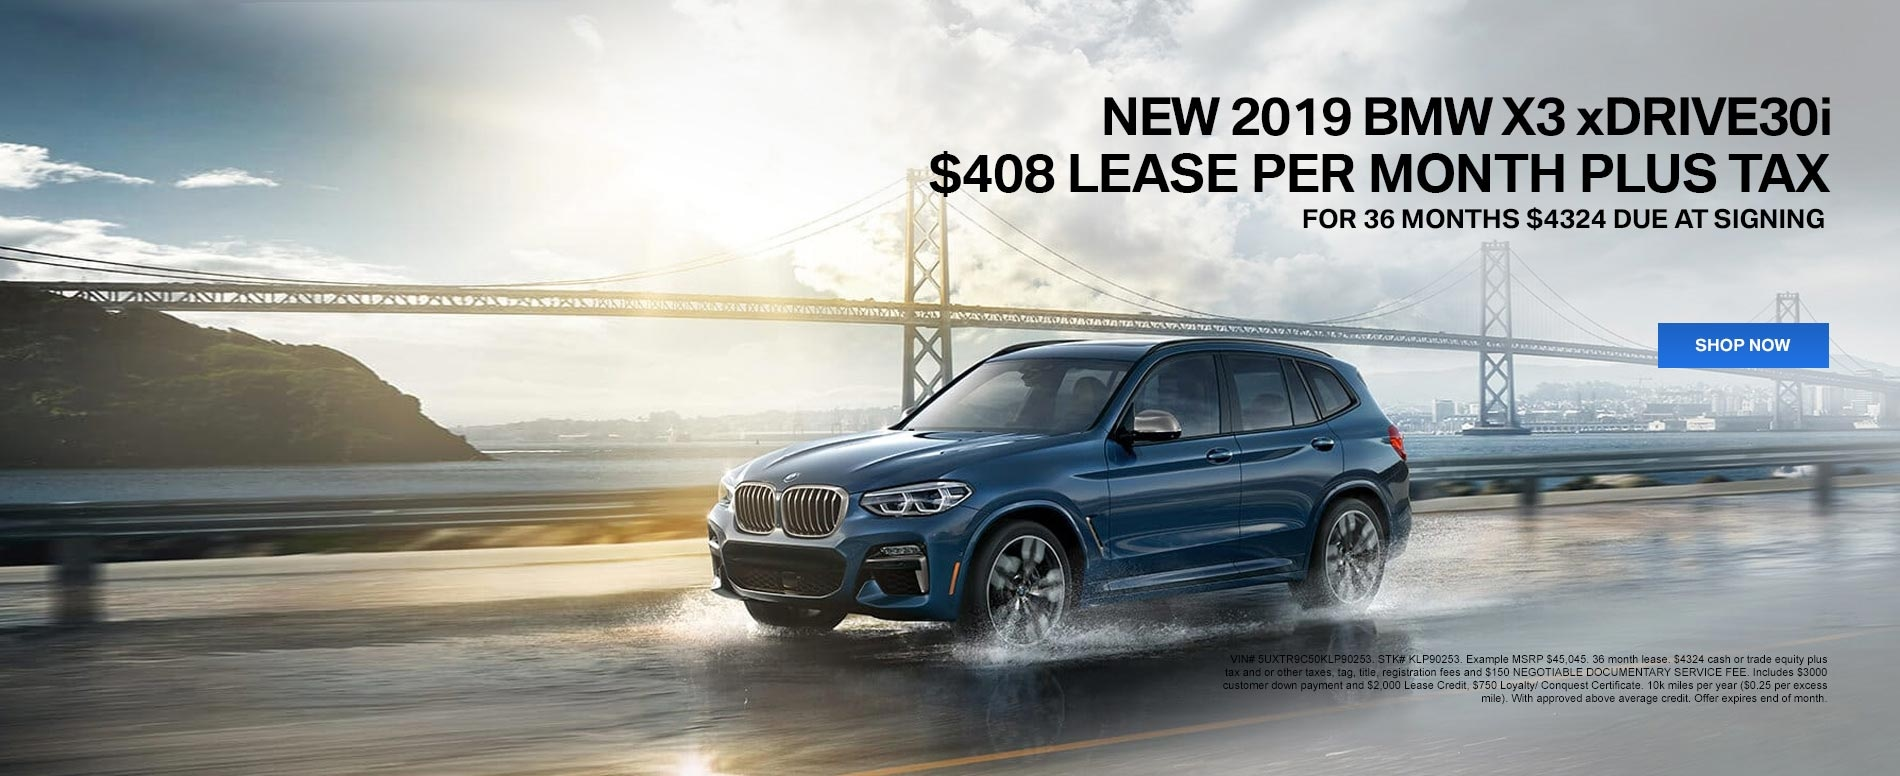 Bmw Dealer Near Me >> Bmw Of Bellevue Bmw Dealership Near Me In Bellevue Wa